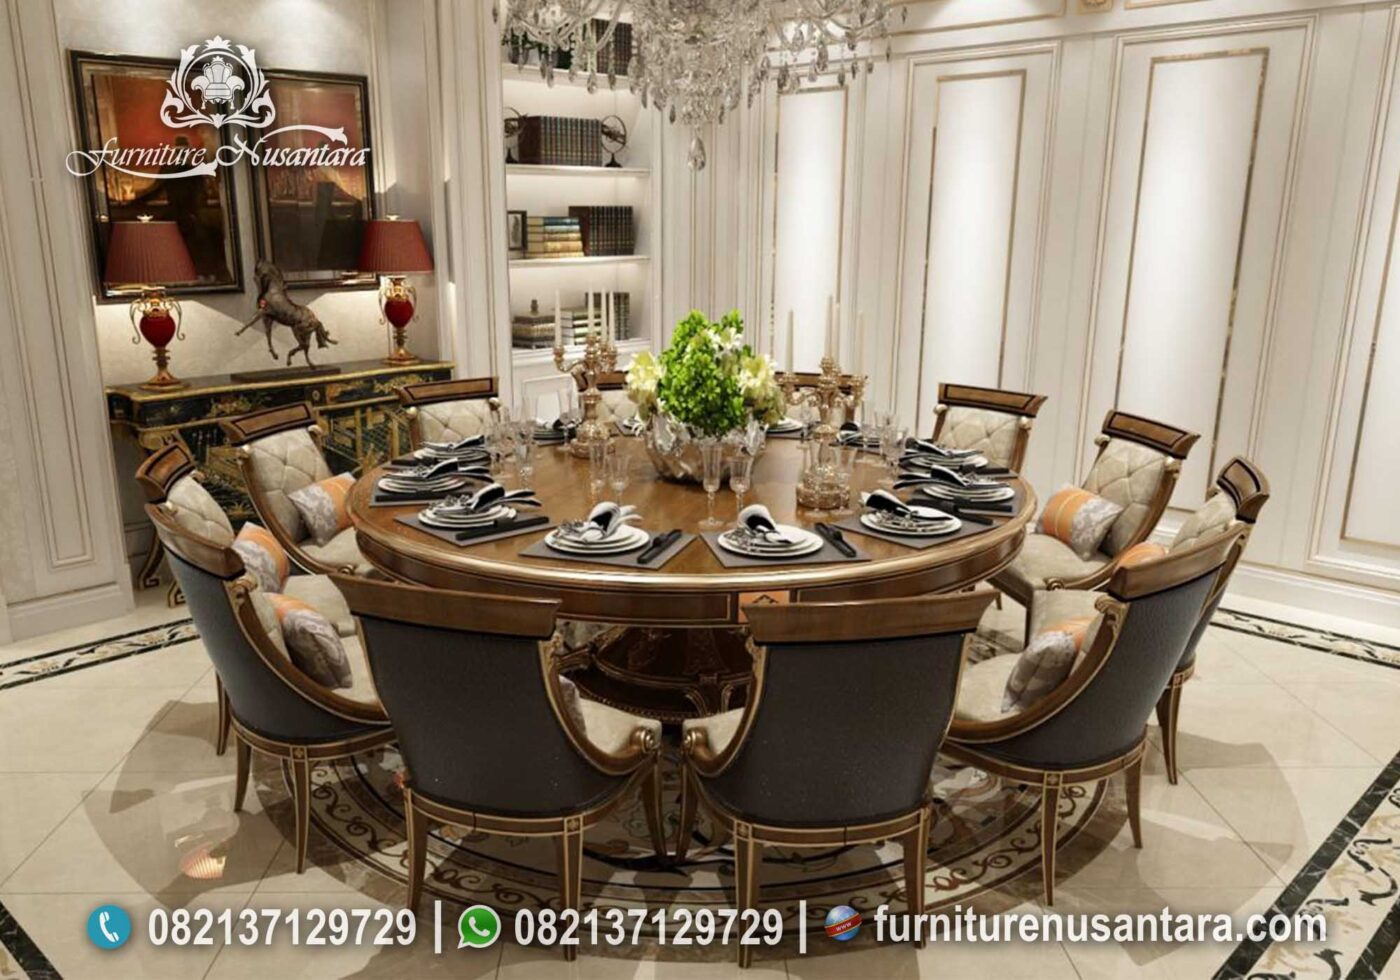 Meja Makan Bulat Natural Kayu Jati Terbaik MM-13, Furniture Nusantara